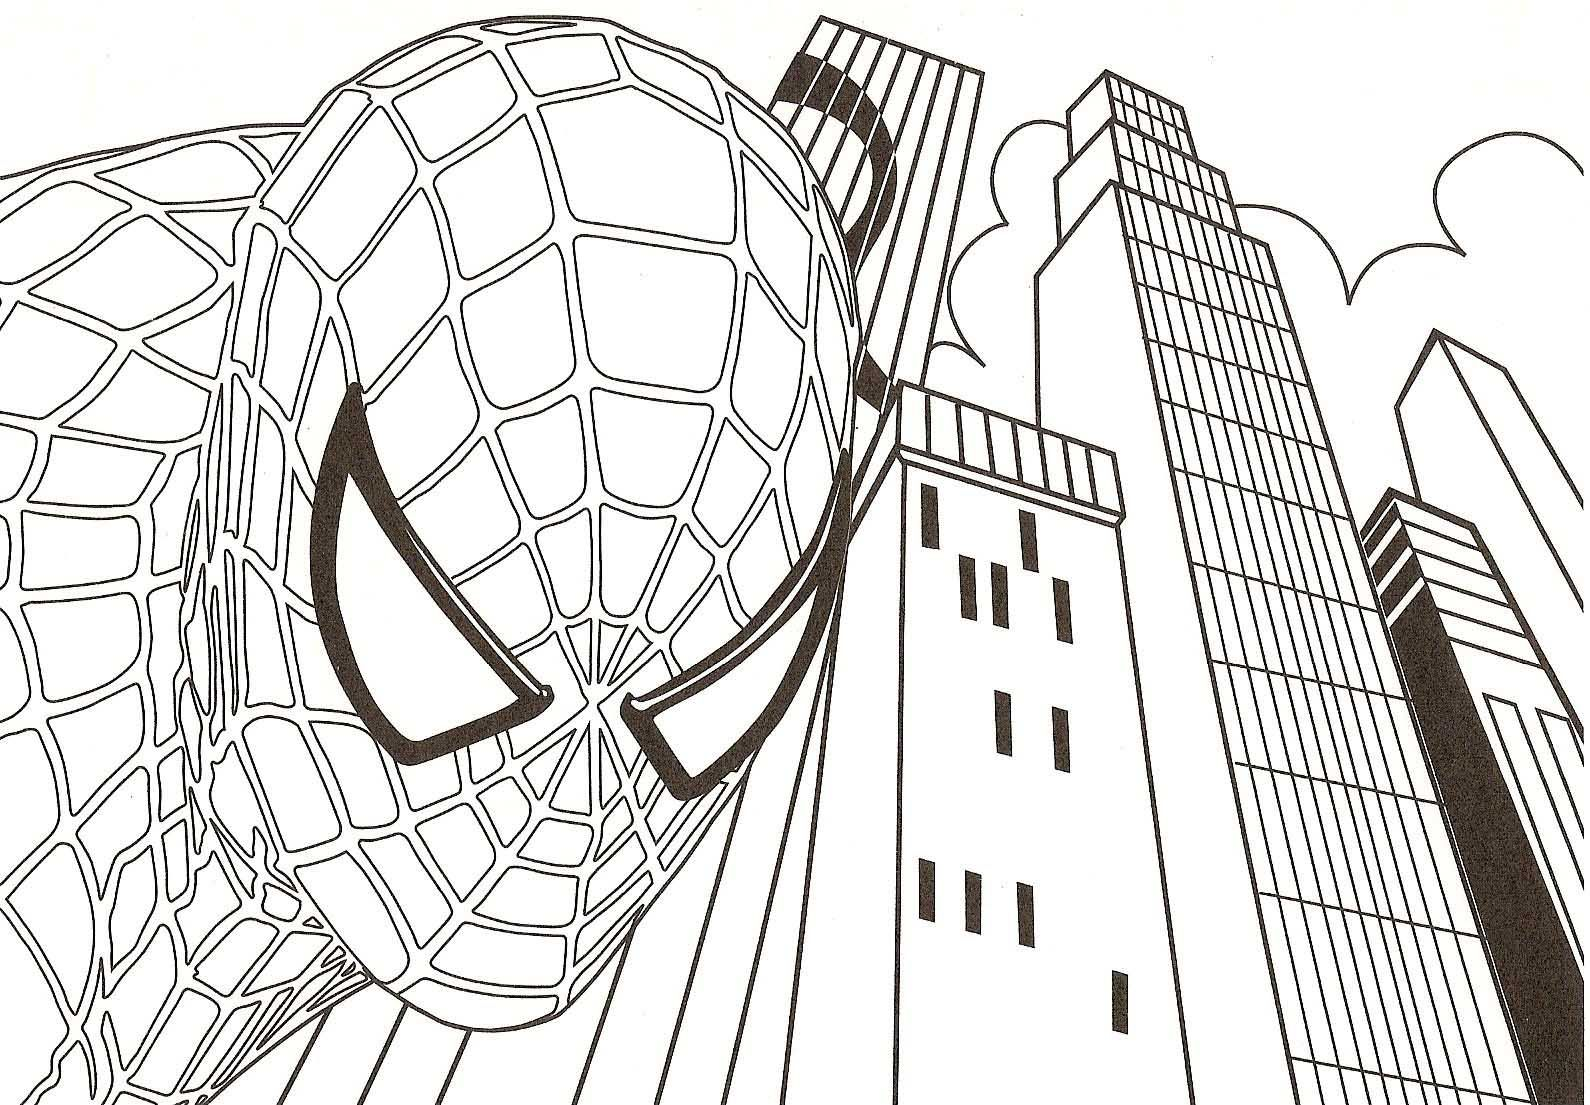 spiderman coloring pages printable free - Google Search | Bug\'s ...